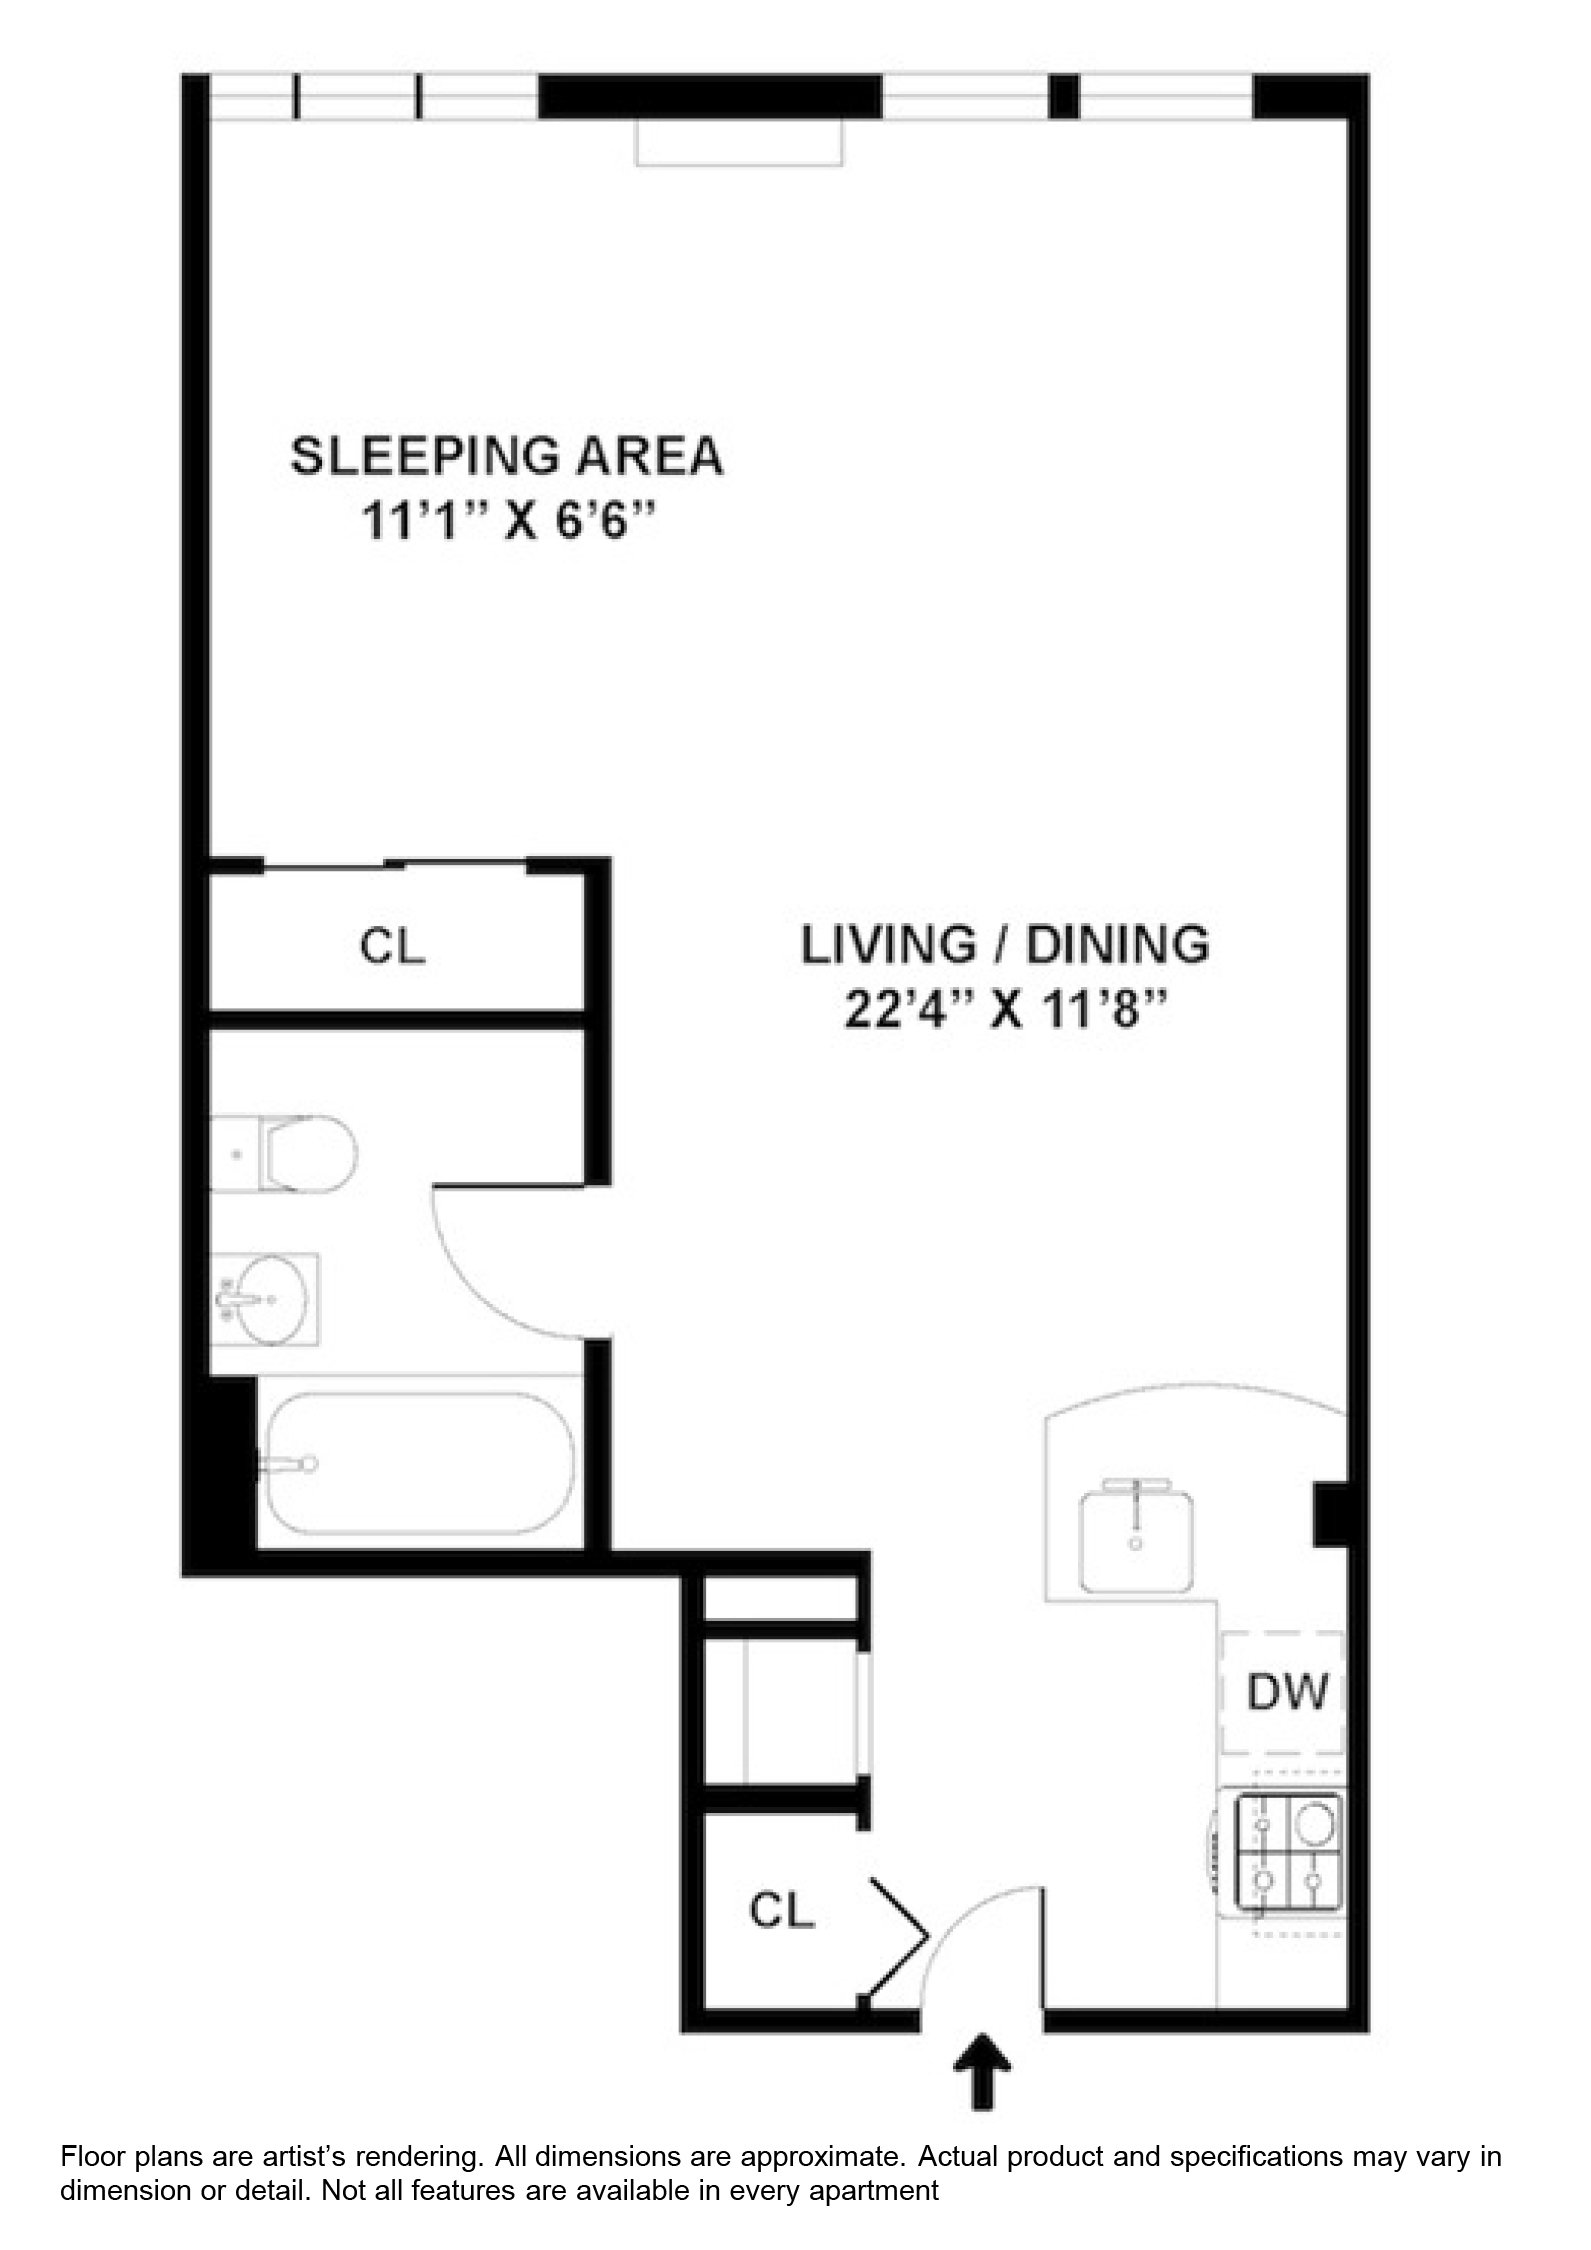 Studio Apartment Floor Plan apartments on new york city's upper east side - renoir house